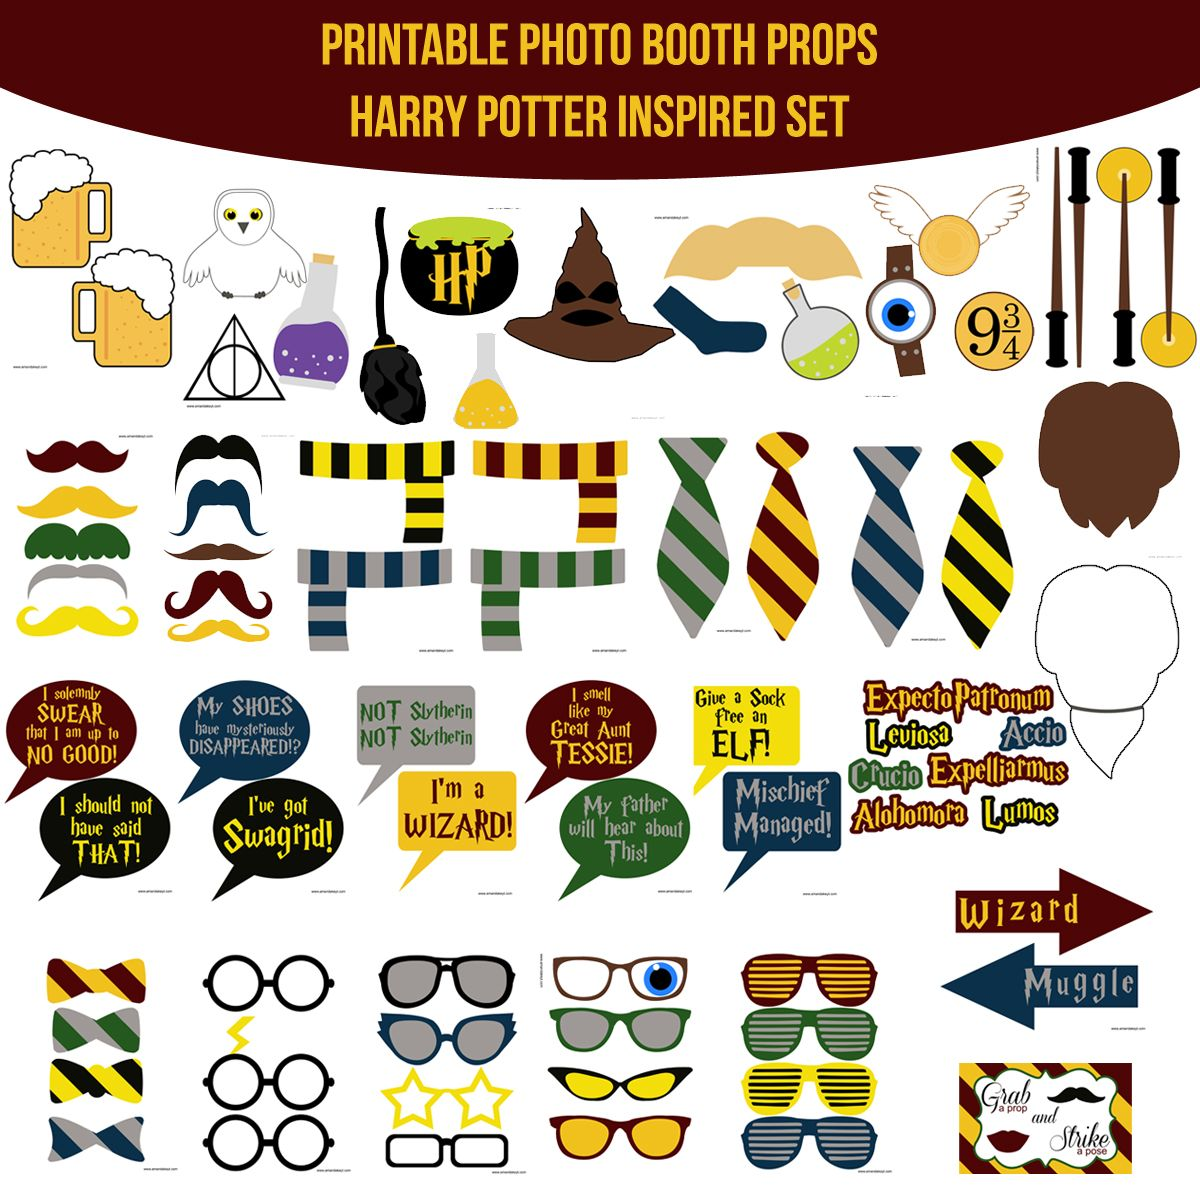 picture regarding Harry Potter Printable Props titled Quick Obtain Harry Potter Encouraged Printable Photograph Booth